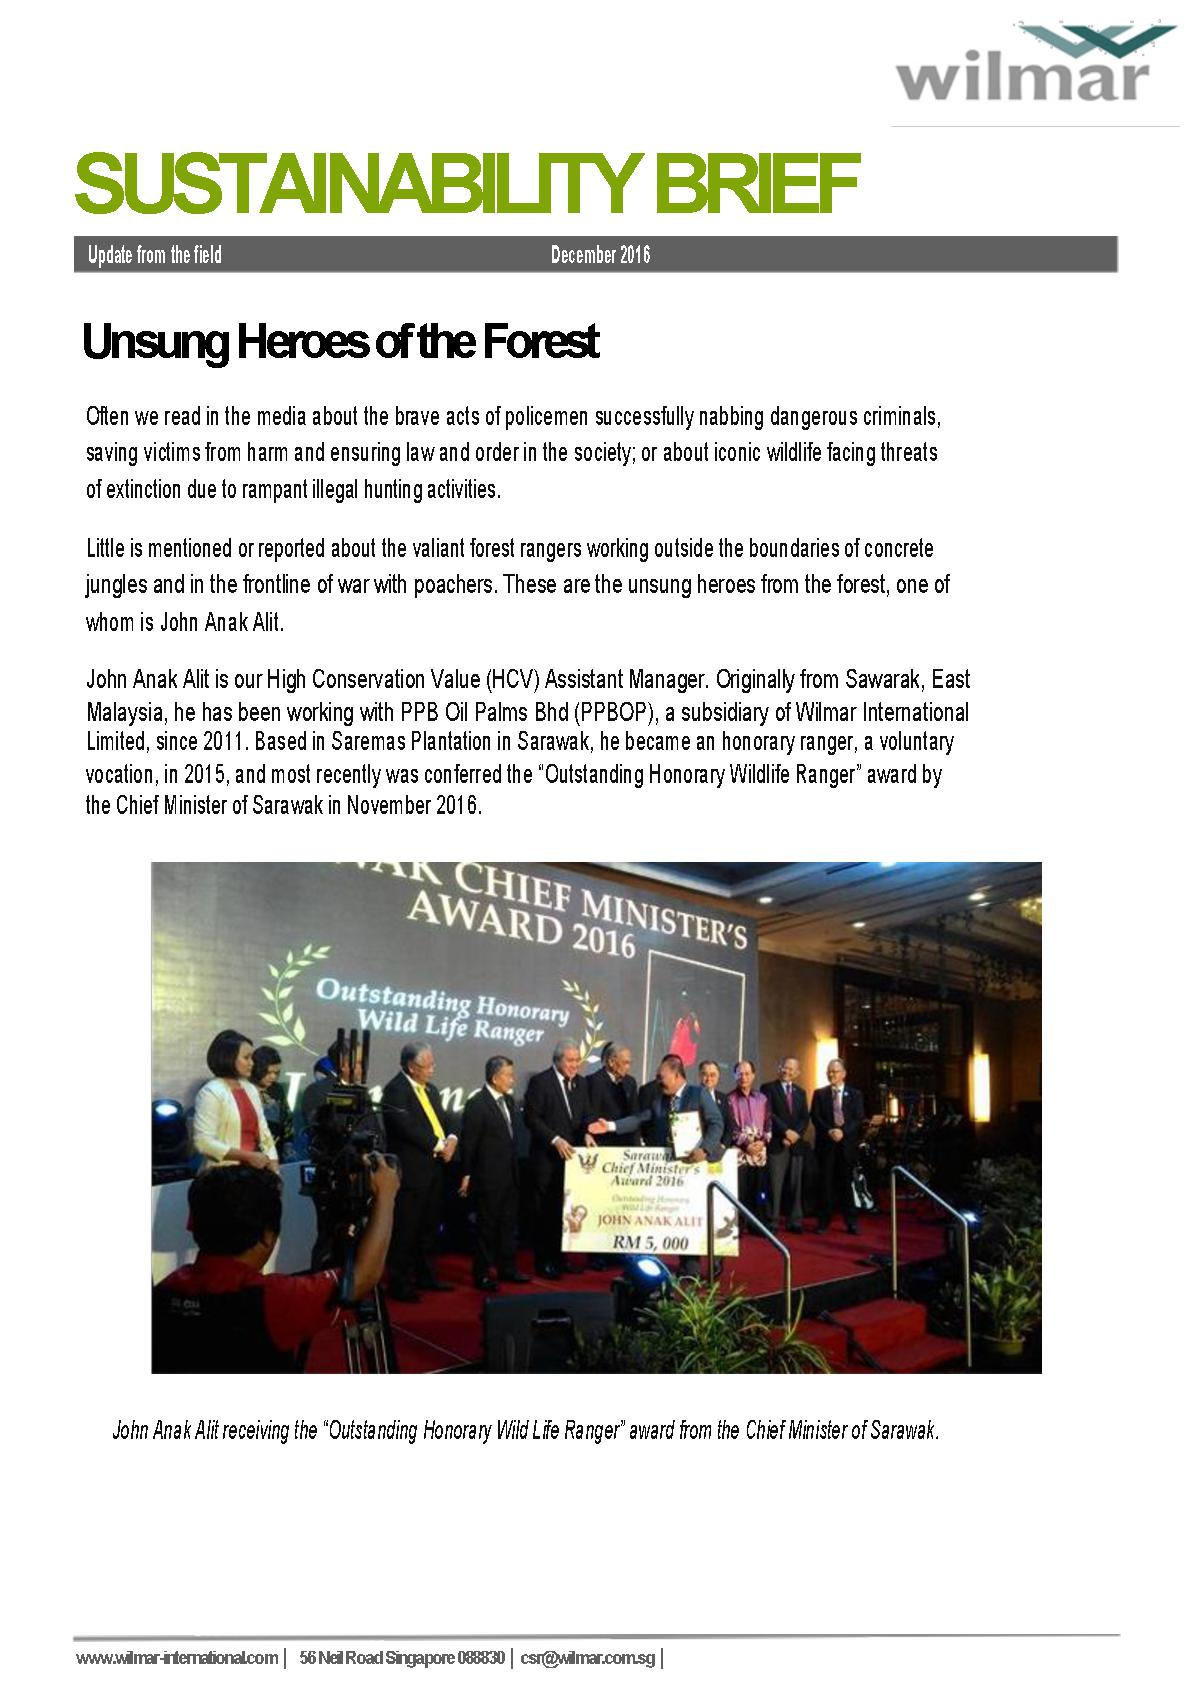 Unsung-Heroes-of-the-Forest